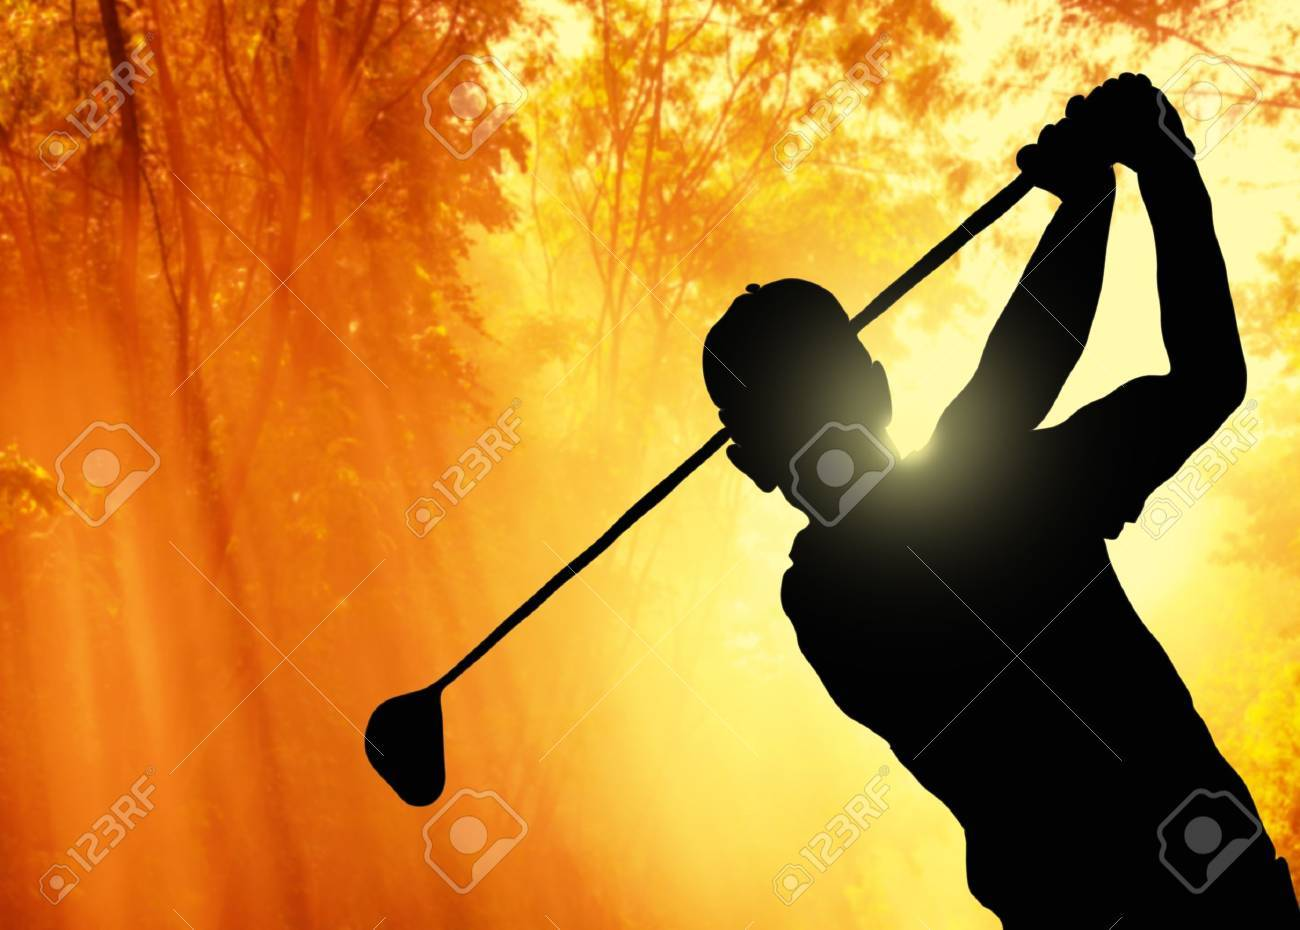 Golfer putting a ball on the green of a golf course - 16086689